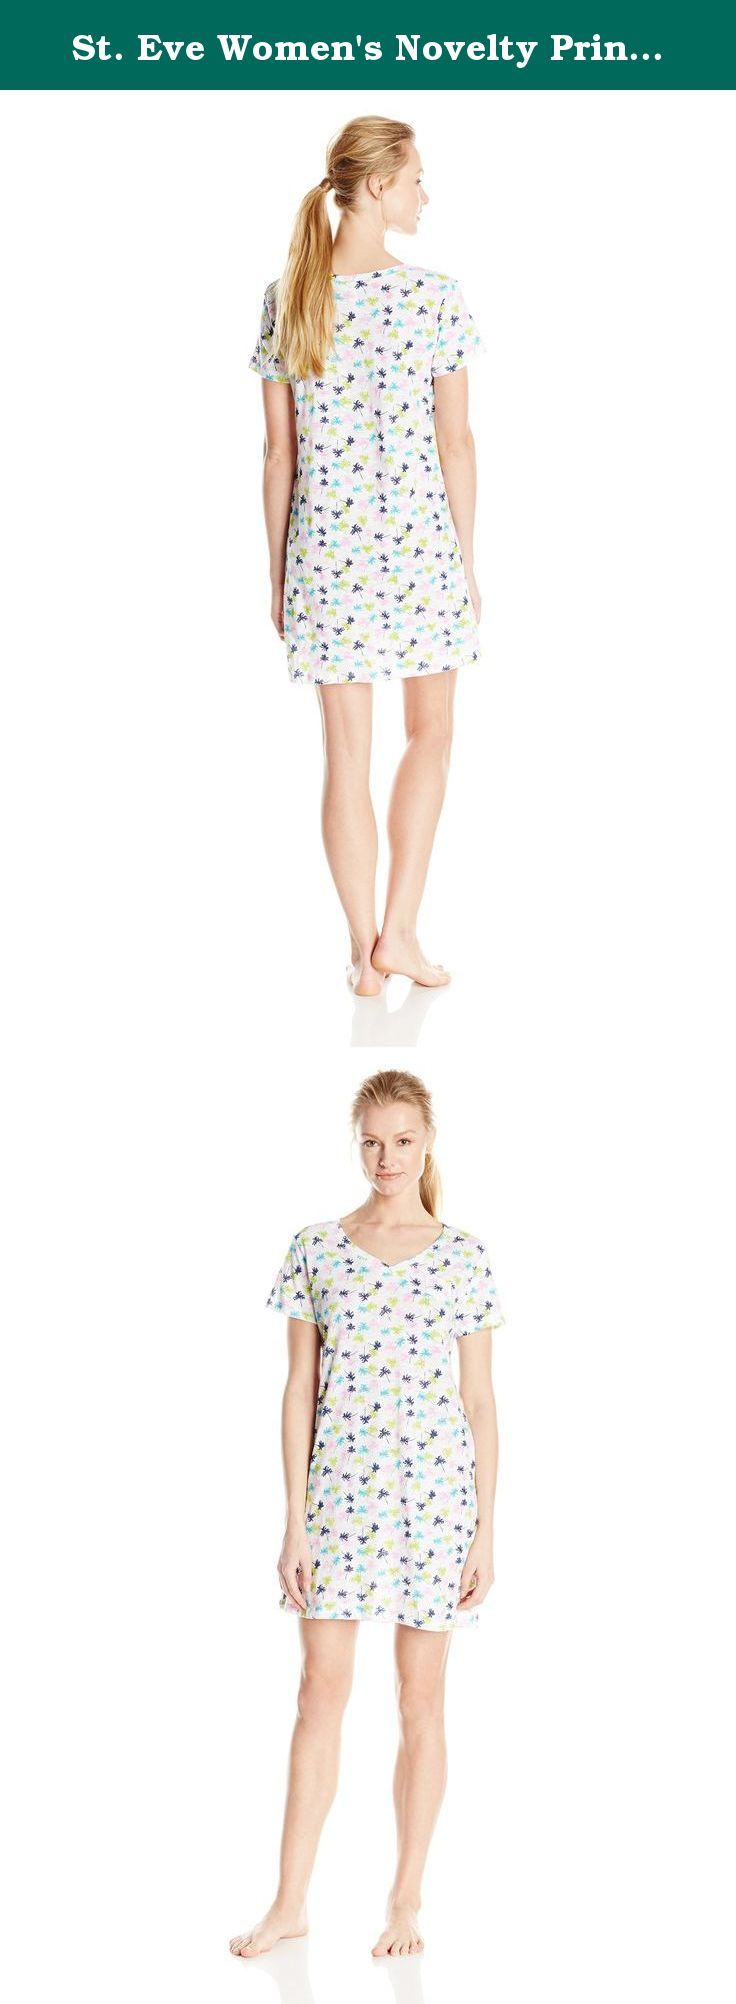 St. Eve Women's Novelty Print Sleepshirt, Palm Trees, Medium. The st eve cotton sleep shirt is all about ease and comfort in a colorful allover novelty print.